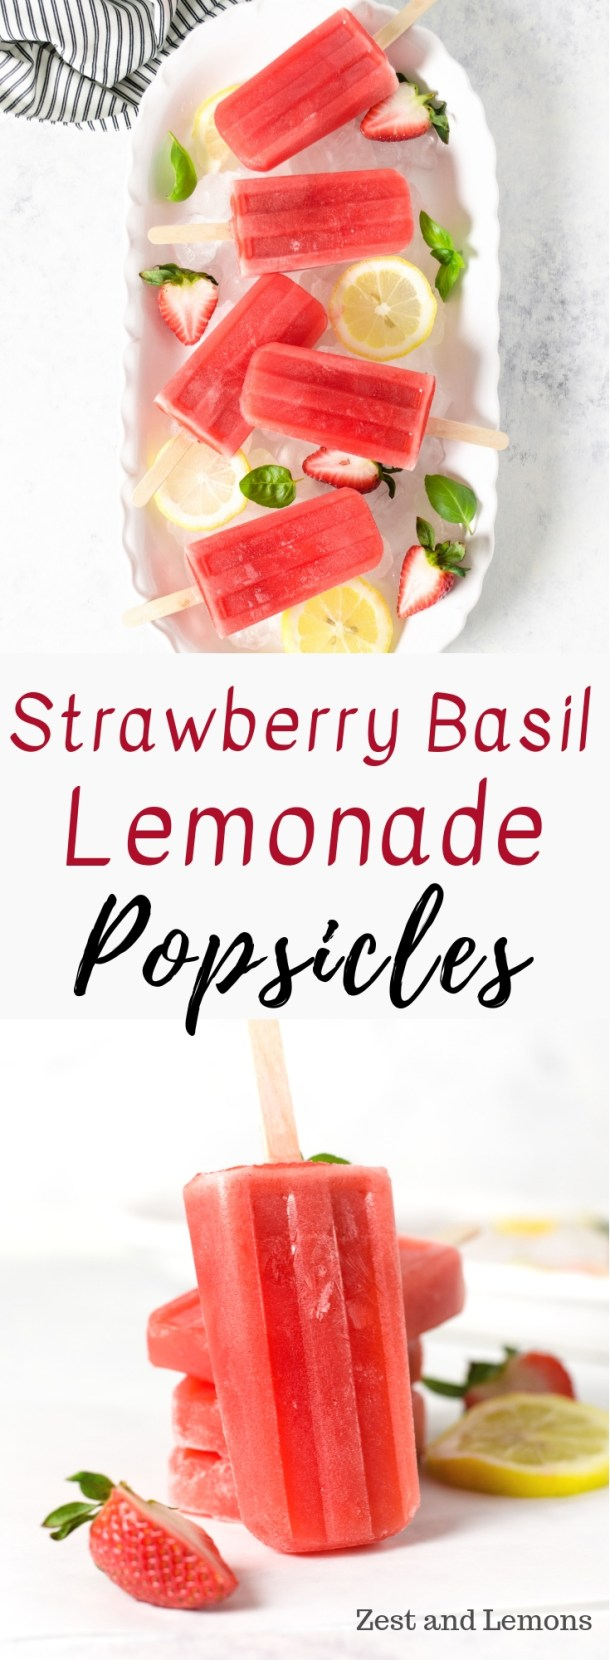 Strawberry basil lemonade popsicles. Berry lemonade popsicles flavored with a basil honey simple syrup - Zest and Lemons #glutenfree #popsicles #strawberrylemonade #lemonadepopsicles